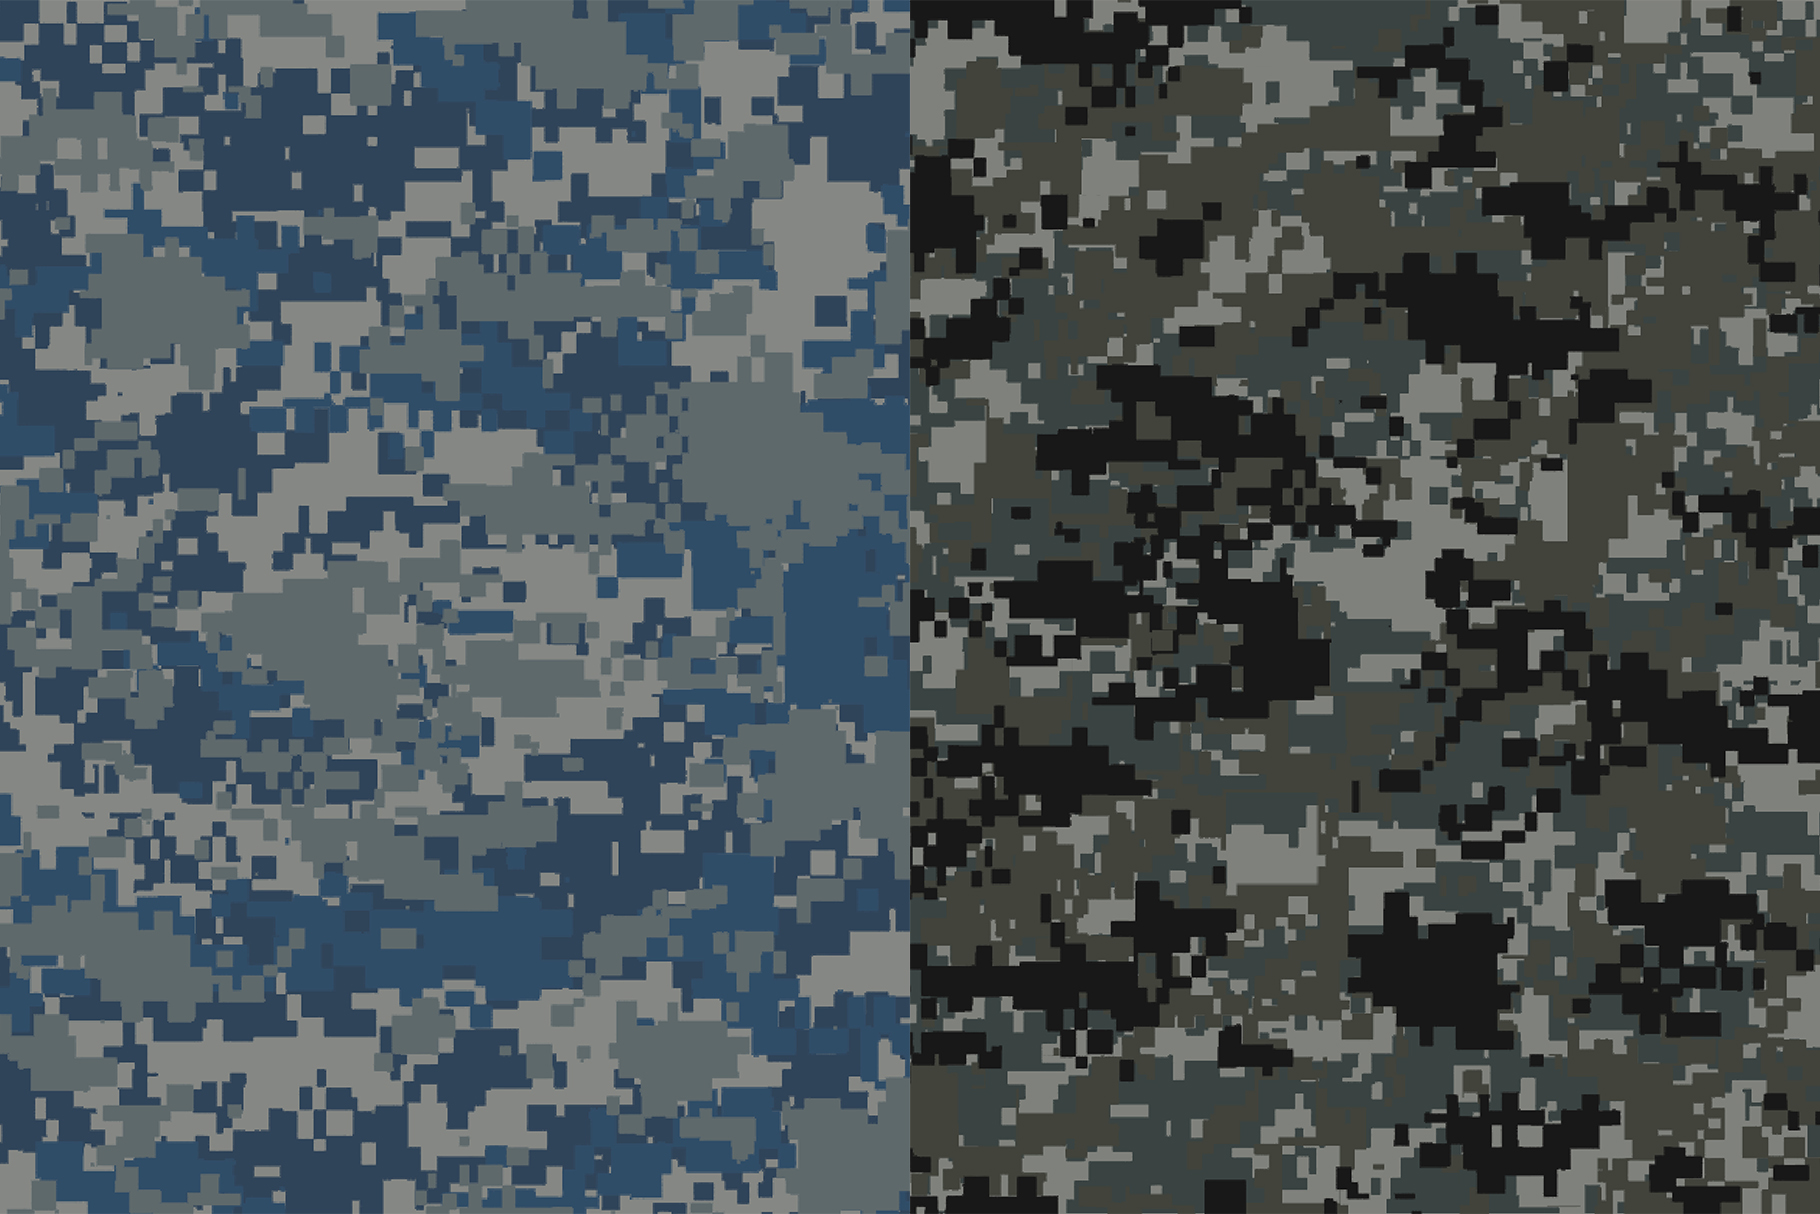 10 Pixel Camouflage Patterns example image 10